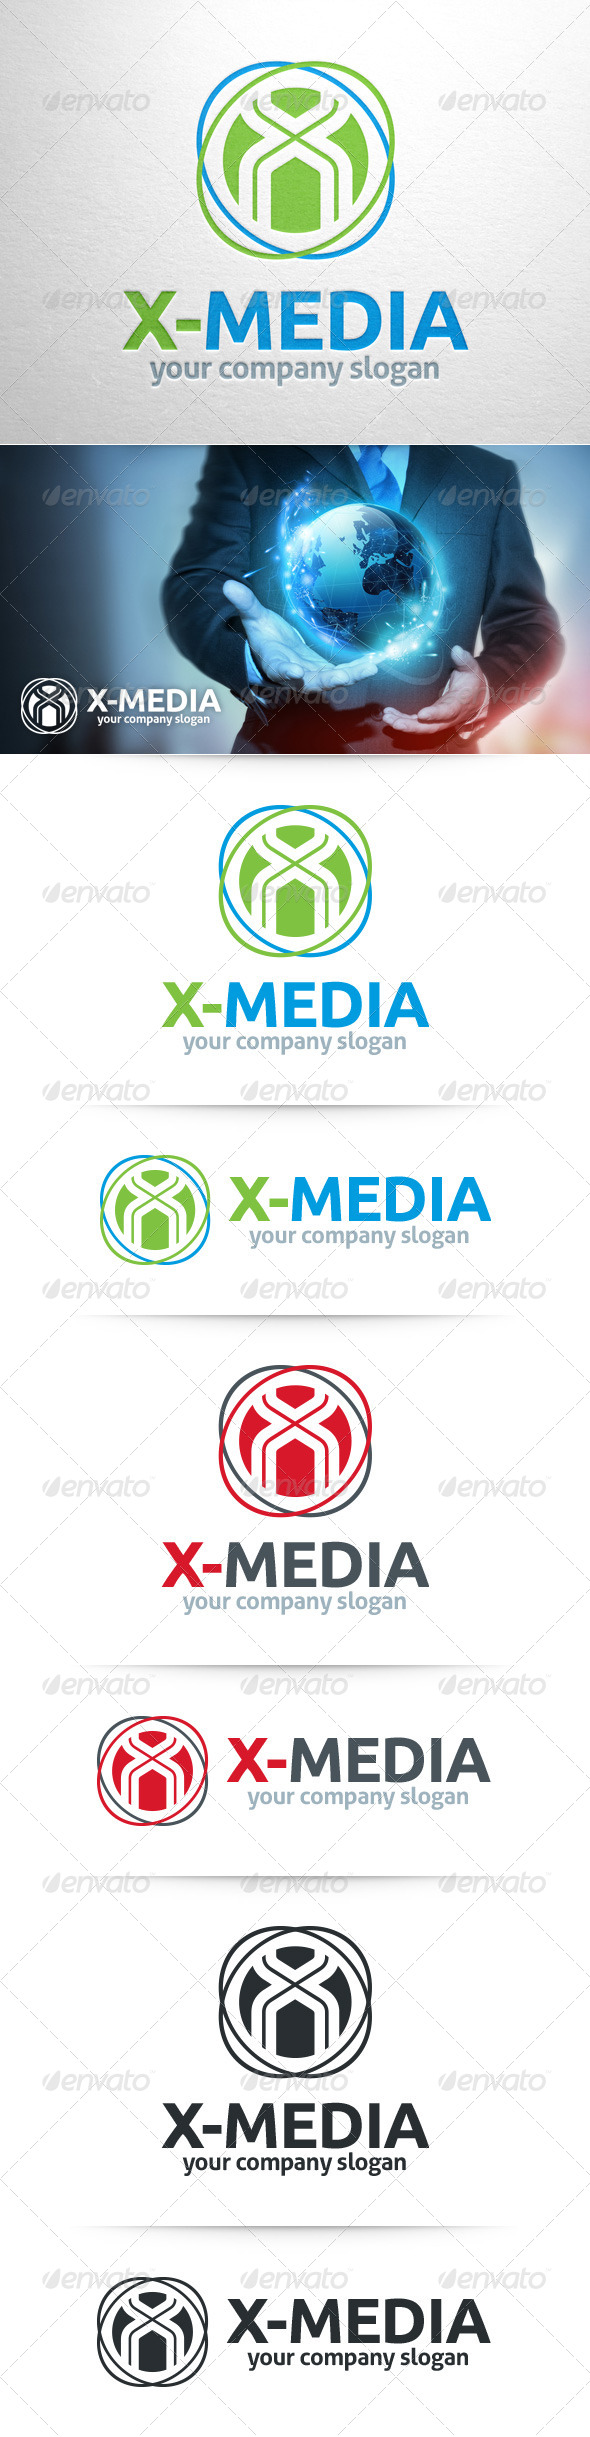 GraphicRiver X-Media Letter X Logo 8390729